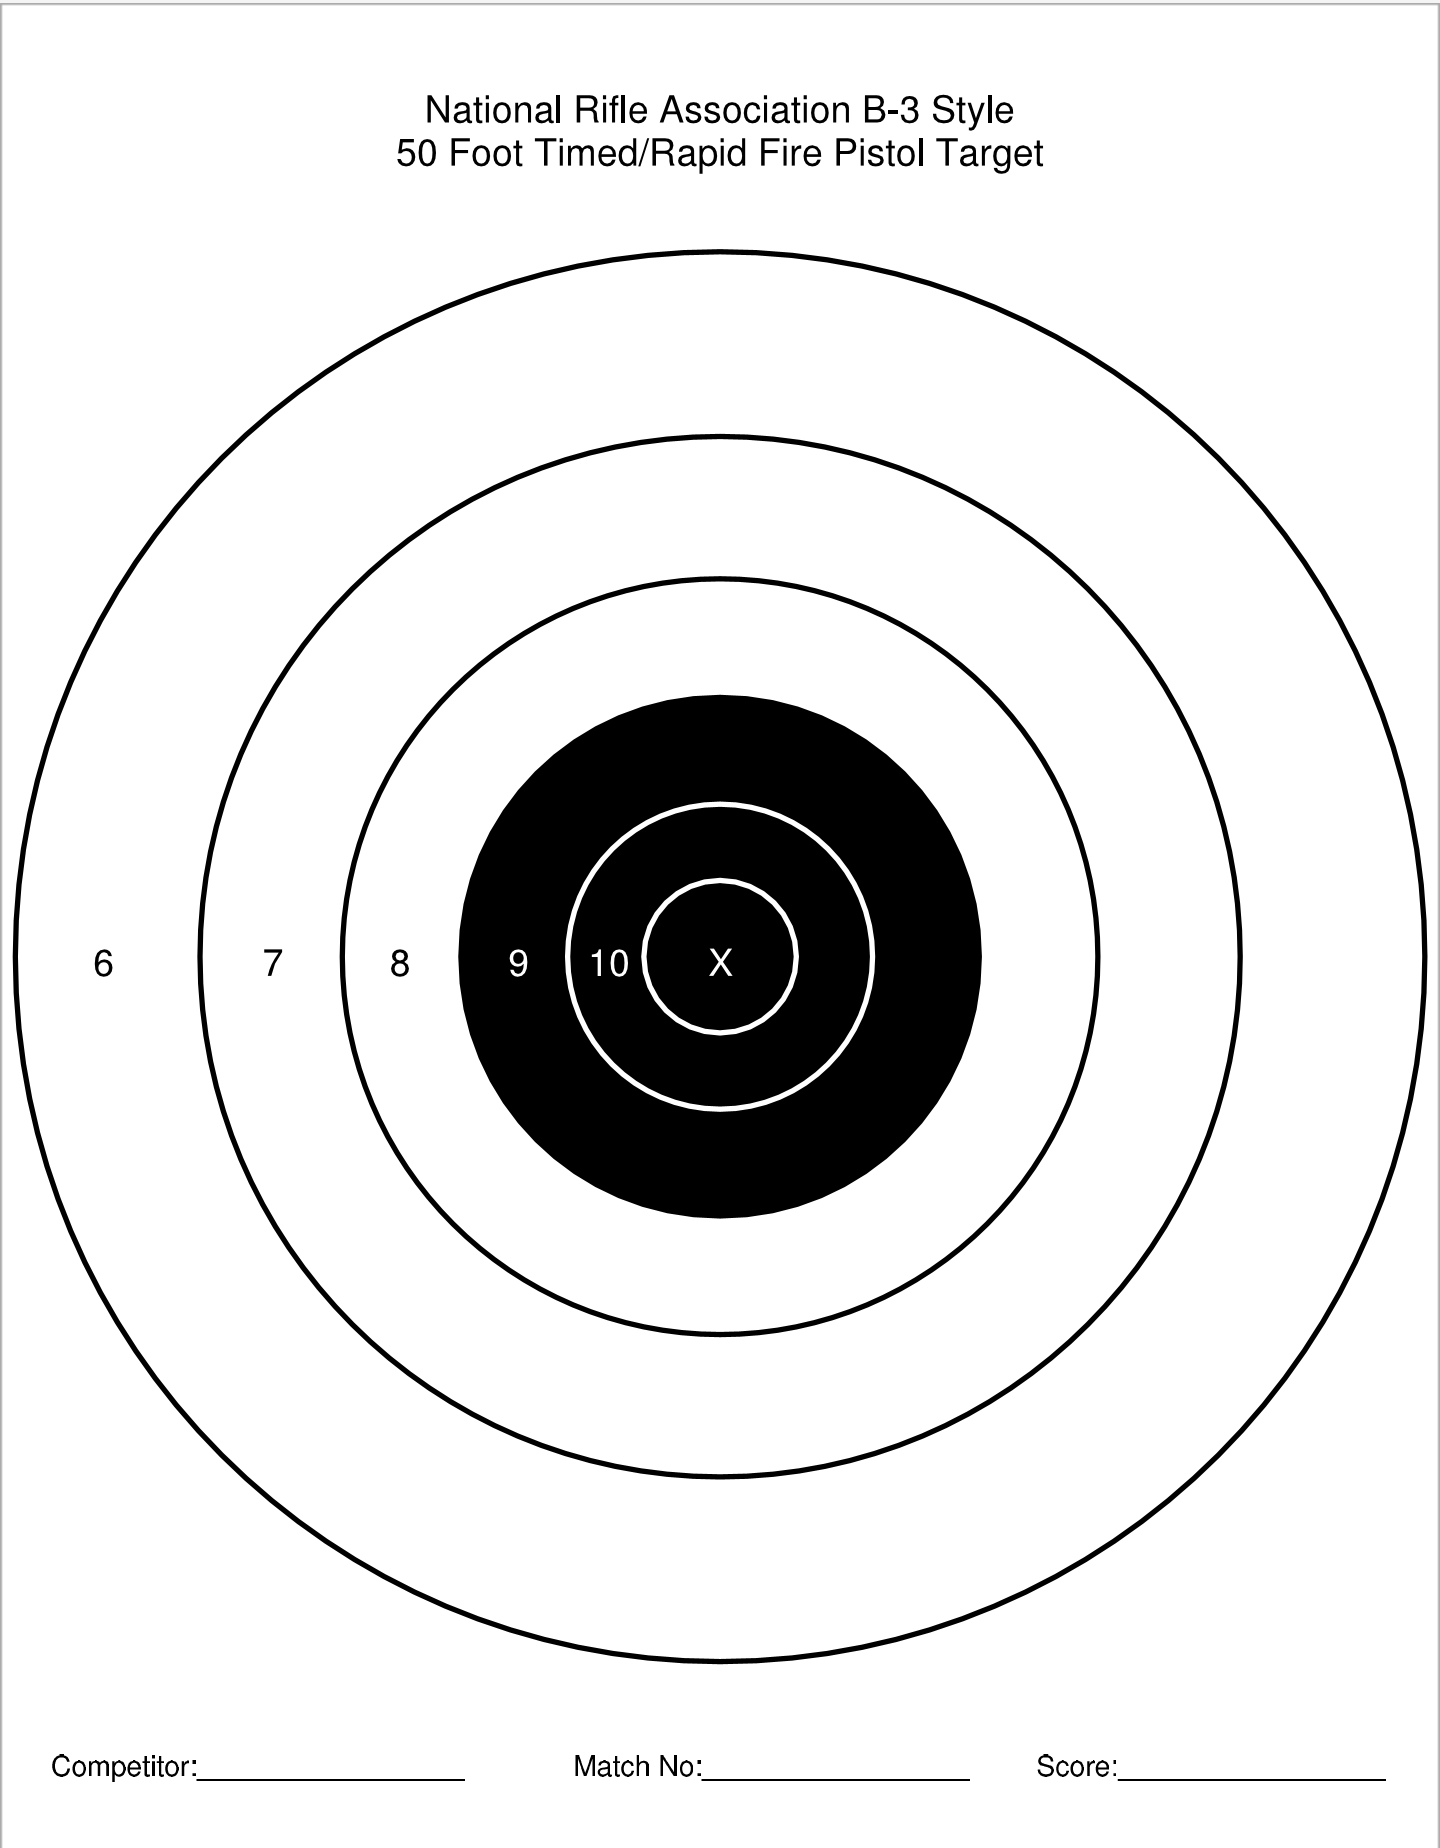 photo about Printable Nra Pistol Targets identify Printable Aim Selection QBall45